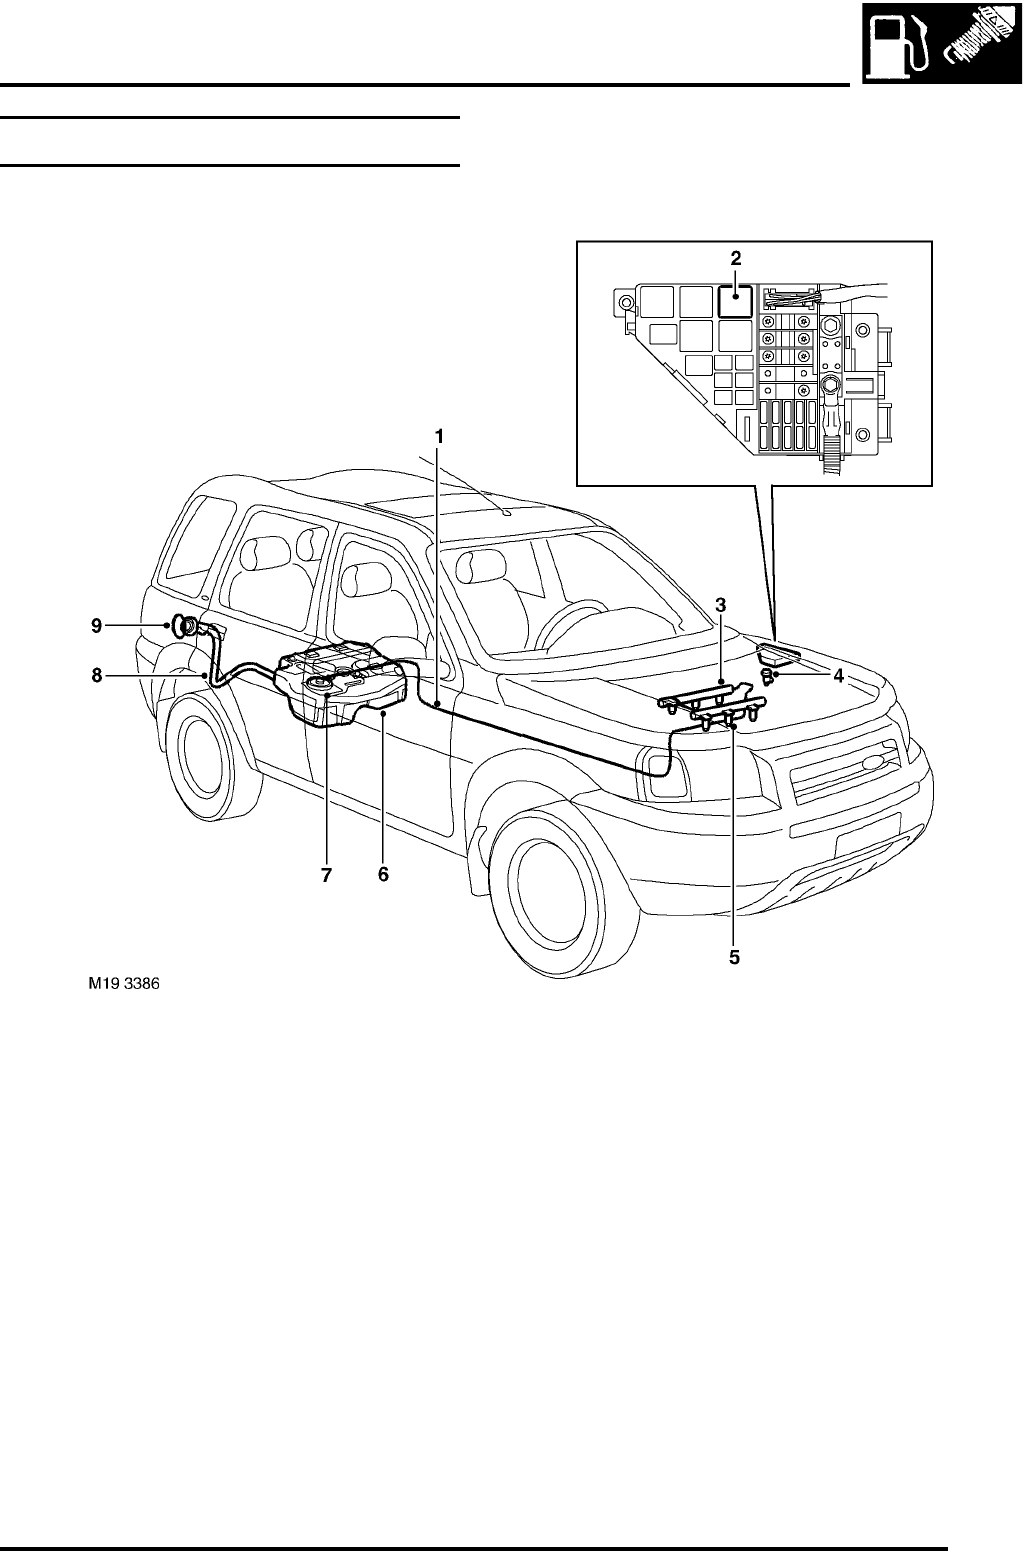 Land Rover Freelander Workshop Manual PDF